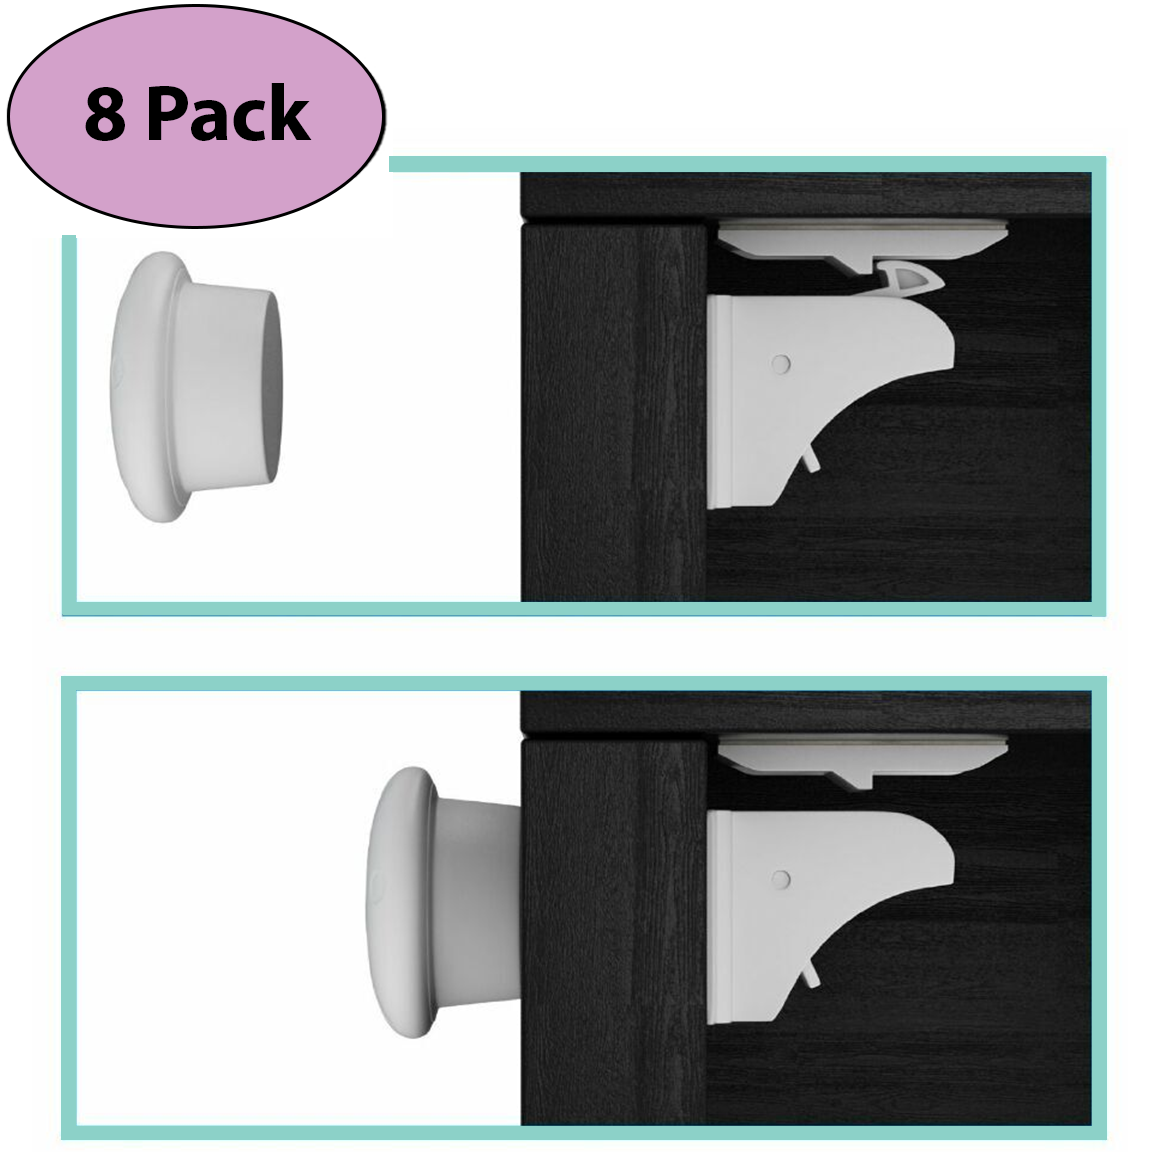 Elitebaby Baby Proofing Magnetic Cabinet Locks Set Of 8 Locks And 2